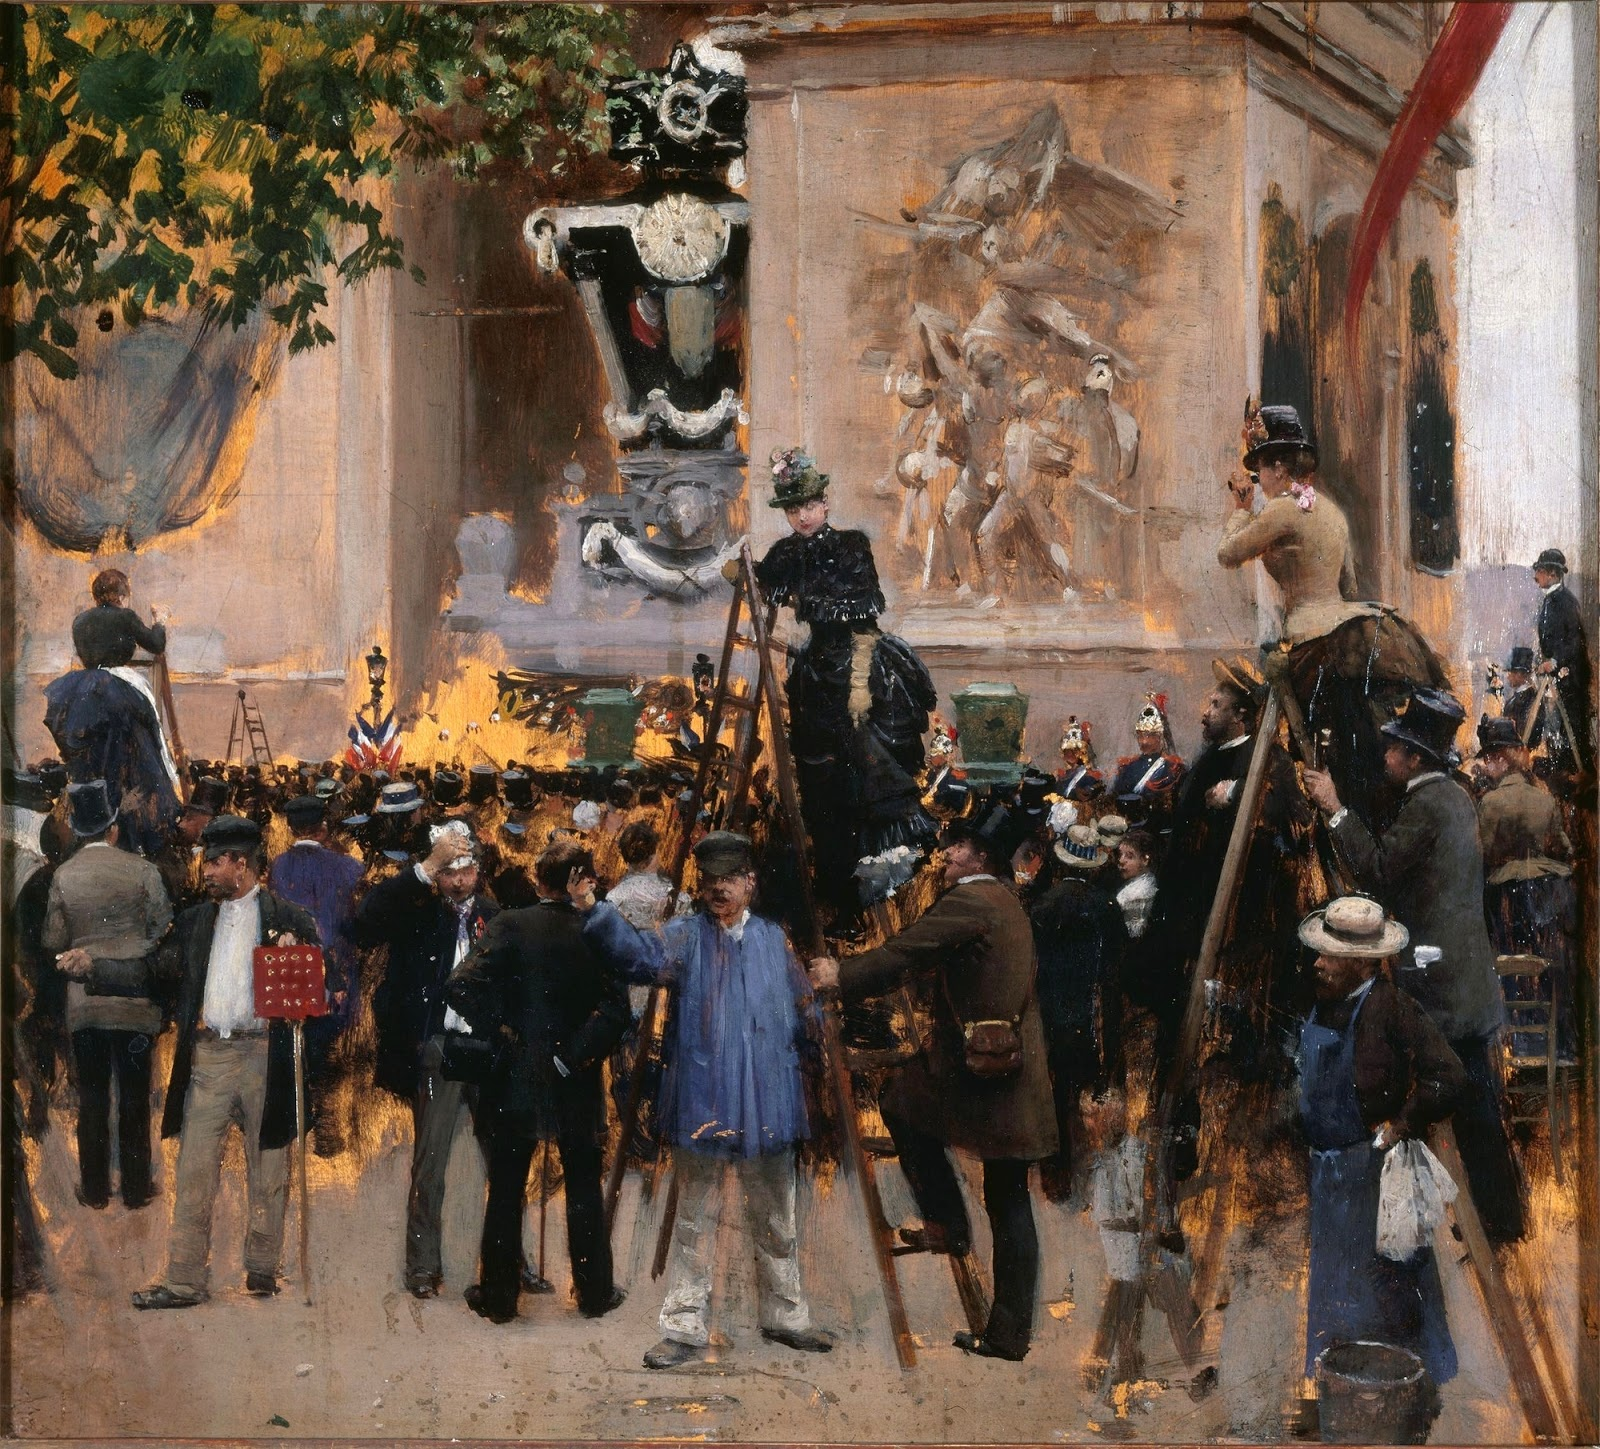 Jean    C Araud  The  Funeral  of  Victor  Hugo C